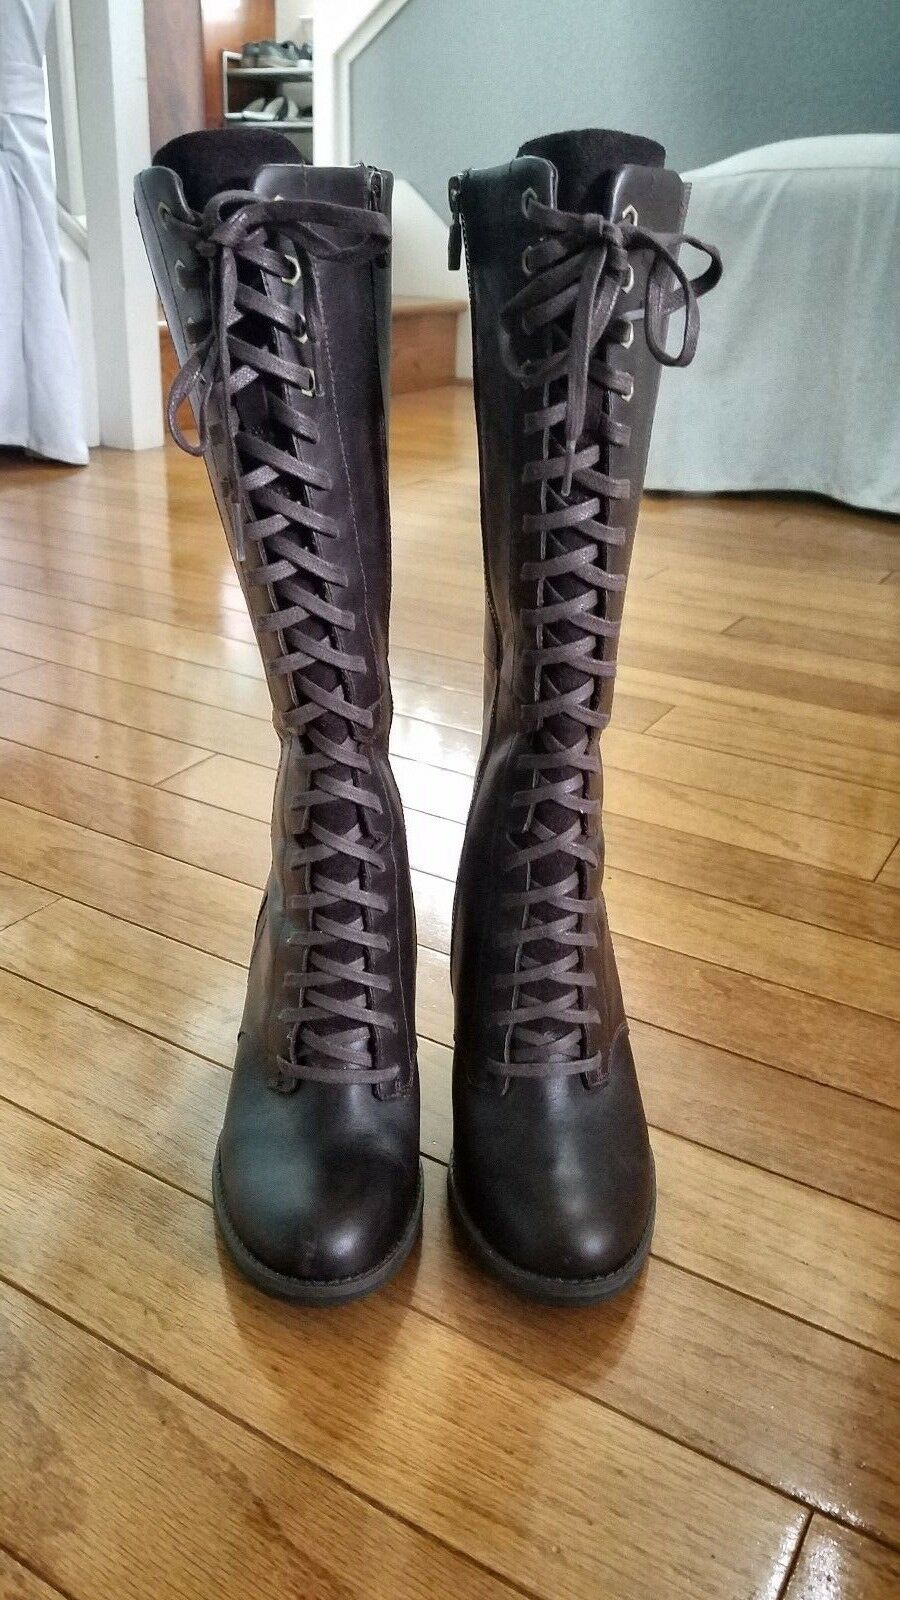 TIMBERLAND - Dark Brown Stratham Heights Sexy Lace Up Boots - Size 6.5 (US)